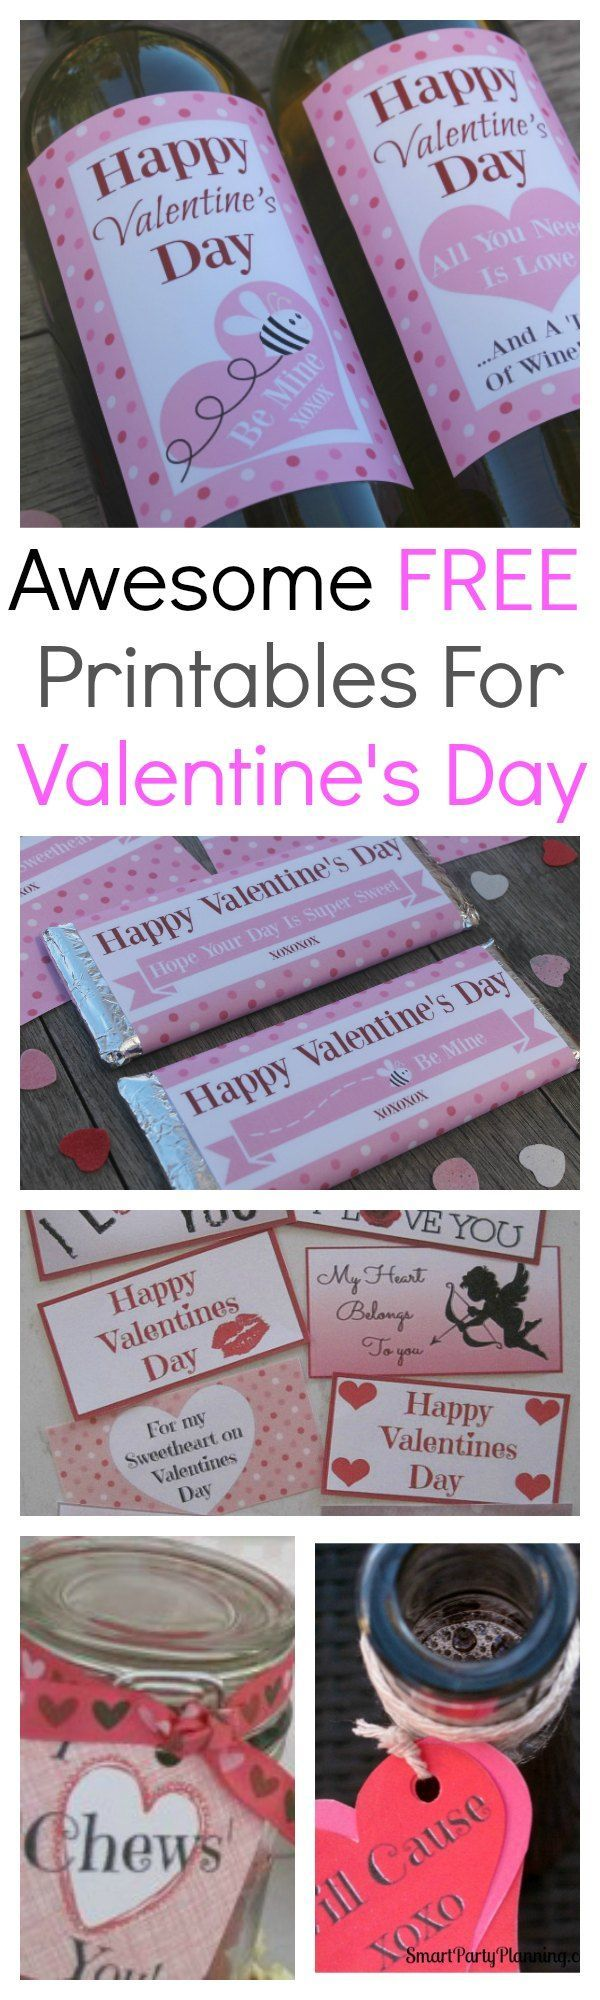 FREE printable's for Valentine's day.  Awesome selection of Valentine's printable's available for immediate download.  Can be used as gifts for him, for the kids, decorations, tags, and lots of Valentine's fun.  Put your heart into your gift and make it with love. #Valentines #Freeprintables #Love